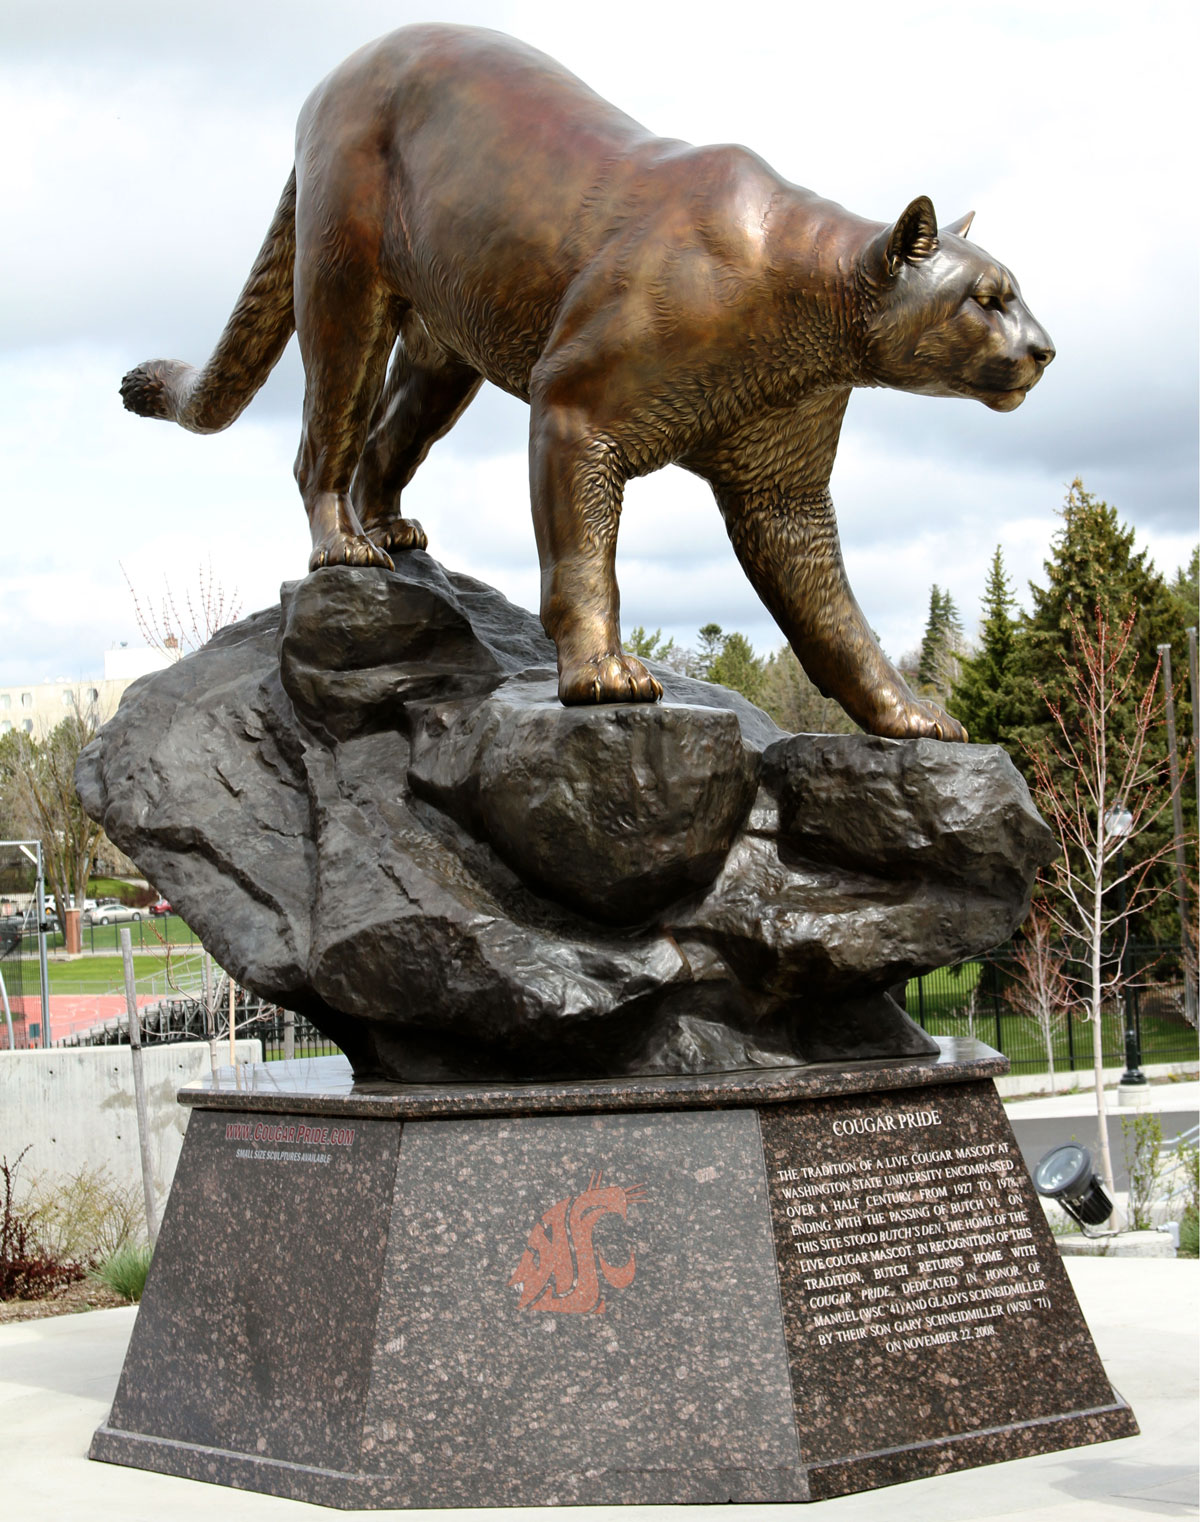 Cougar-Pride-Washington-State-University-Cougar-Sculpture-Monument-Statue